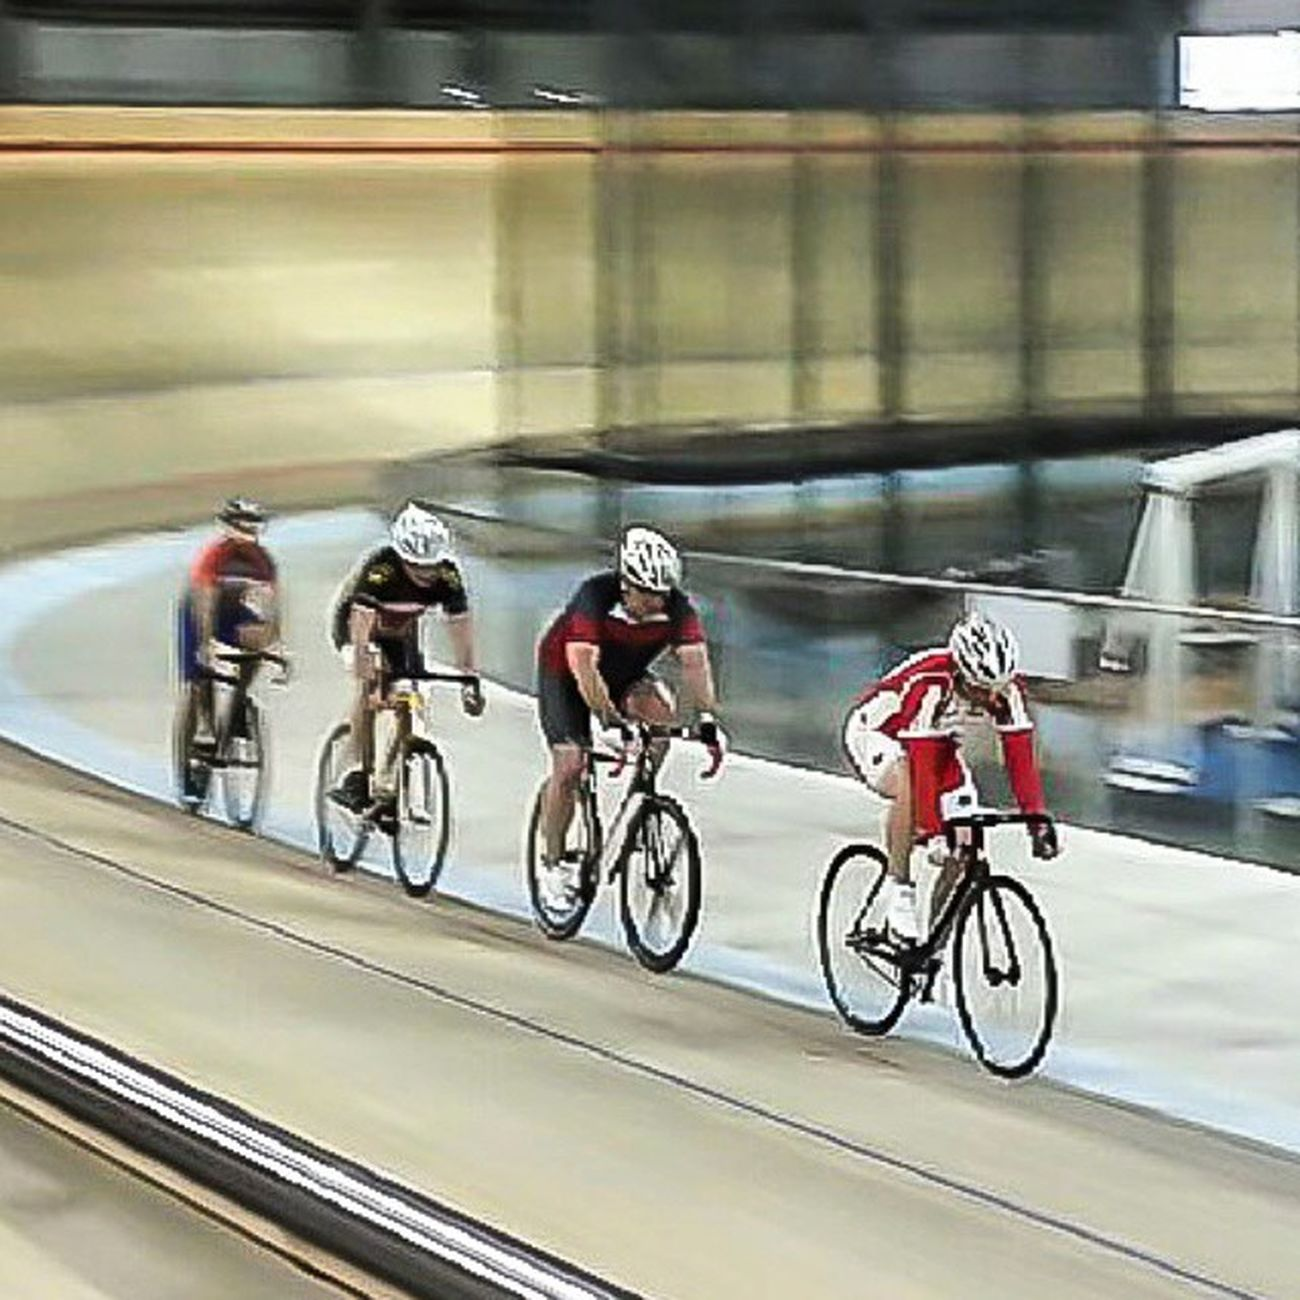 Pushing through at the Mattamy Velodrome this evening. That is me in second position. Hard tonight after being up 14 hours.Torontofixed Fixedgear Trackcycling Trackbikes Jamisbikes Sonik Aerospoke Ridingtheboards Mattamynationalcyclingcentre Milton Ontario Canada Fast Paceline Aero Hurting Fit Fitness Gettingthere Getoutanddoit Photography Digitalphotography Lovetotakepictures Rrhurstphotography Latowphotographersguild